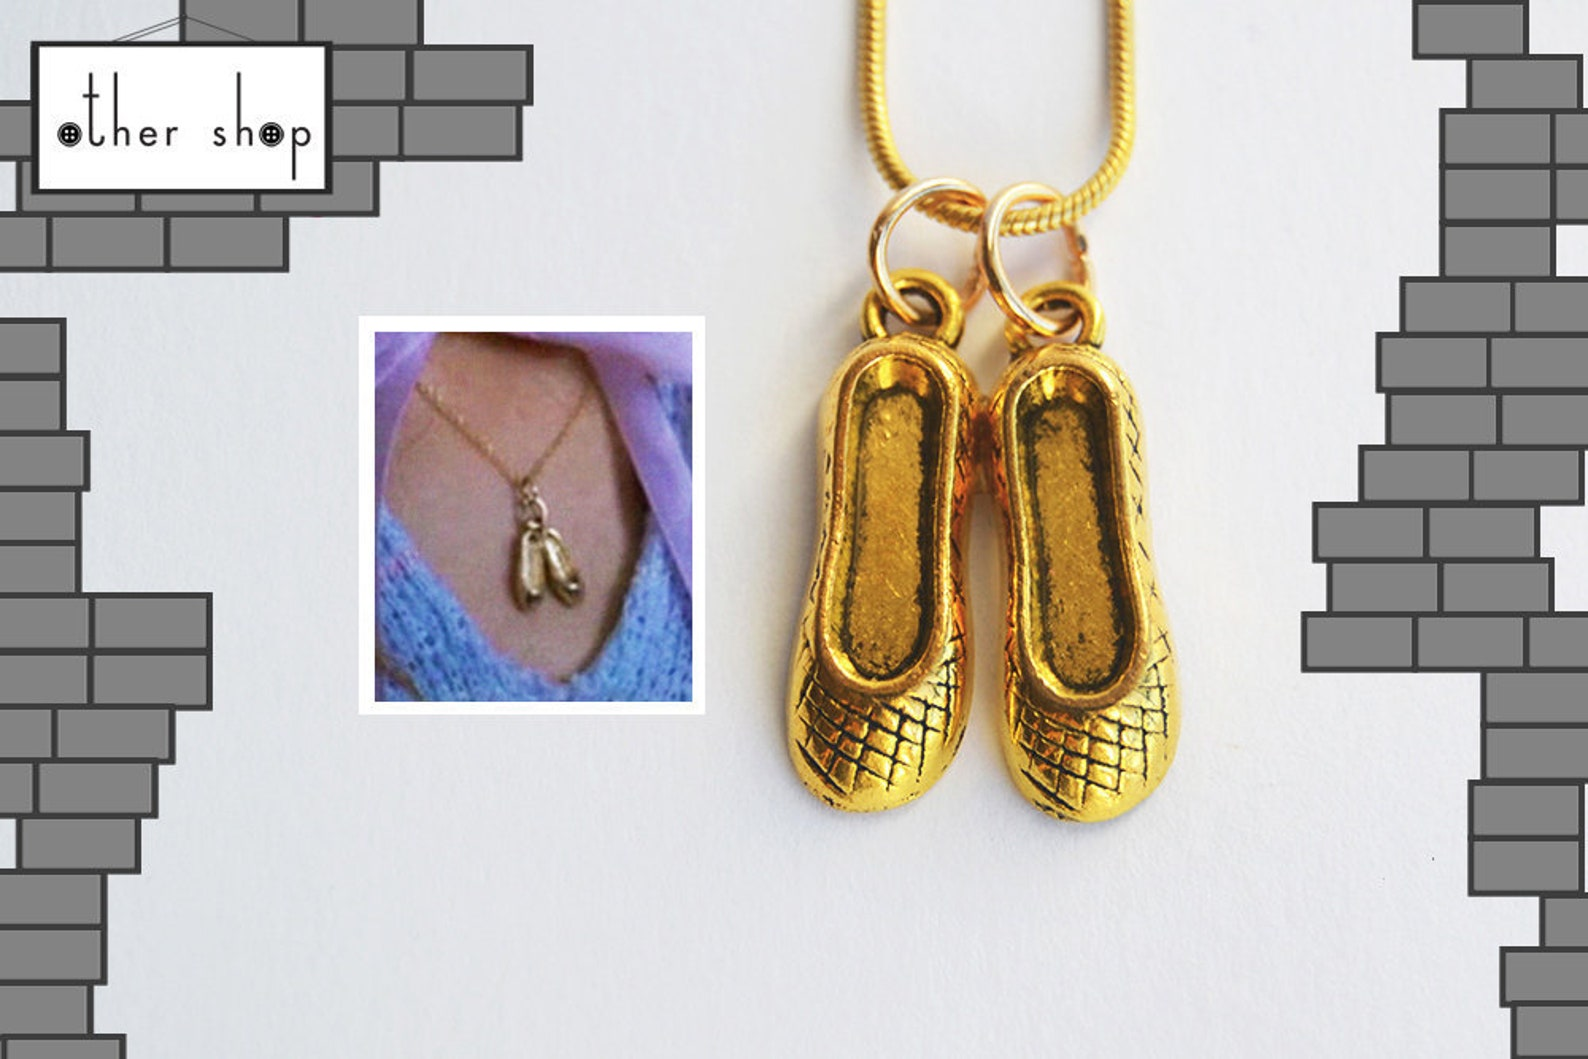 nancy wheeler's golden ballet slippers charm pendant necklace - accurate version - upside down jewelry